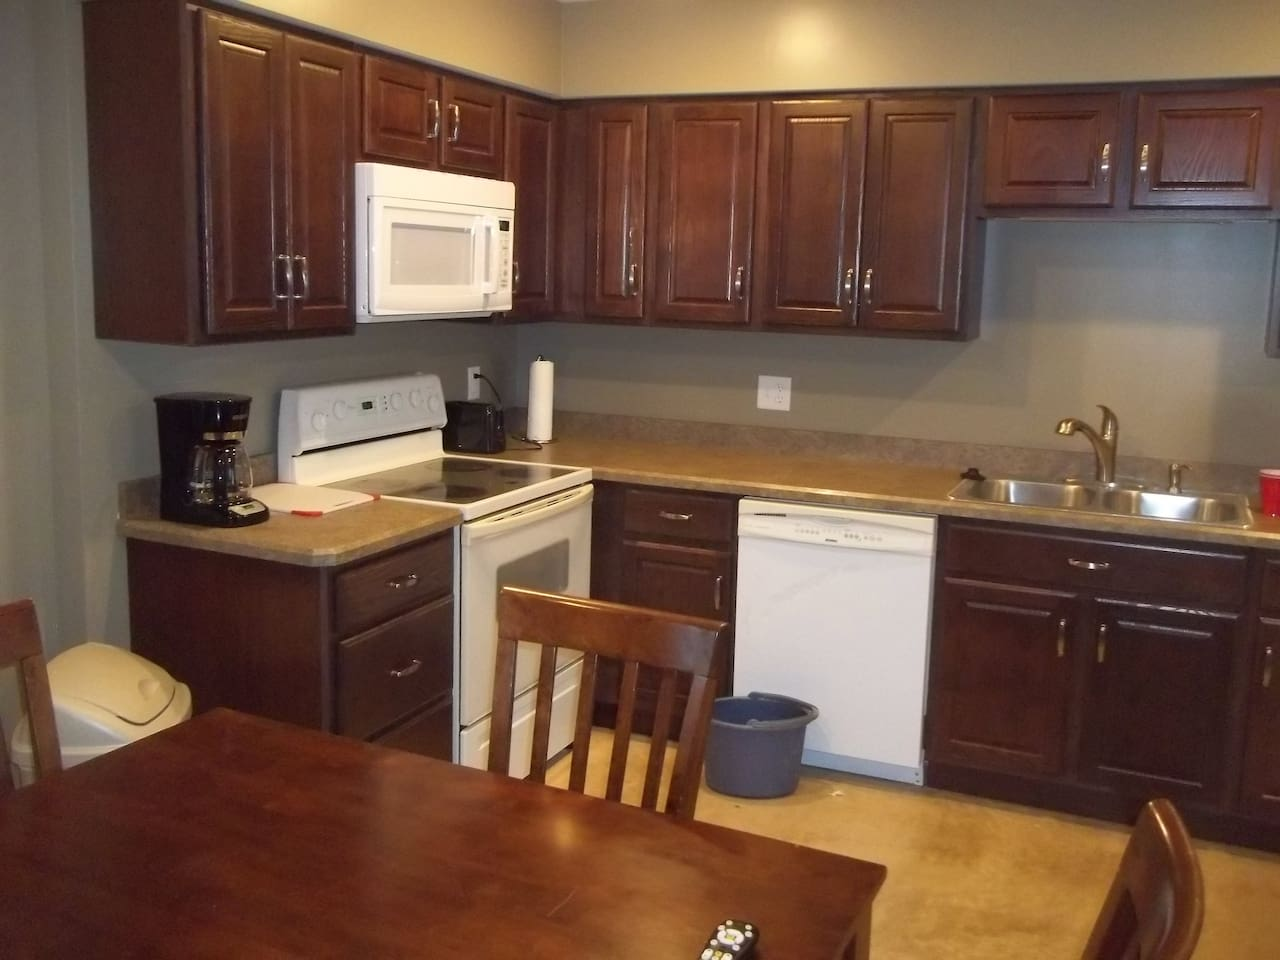 all dishes, pots, pans utensils are included.